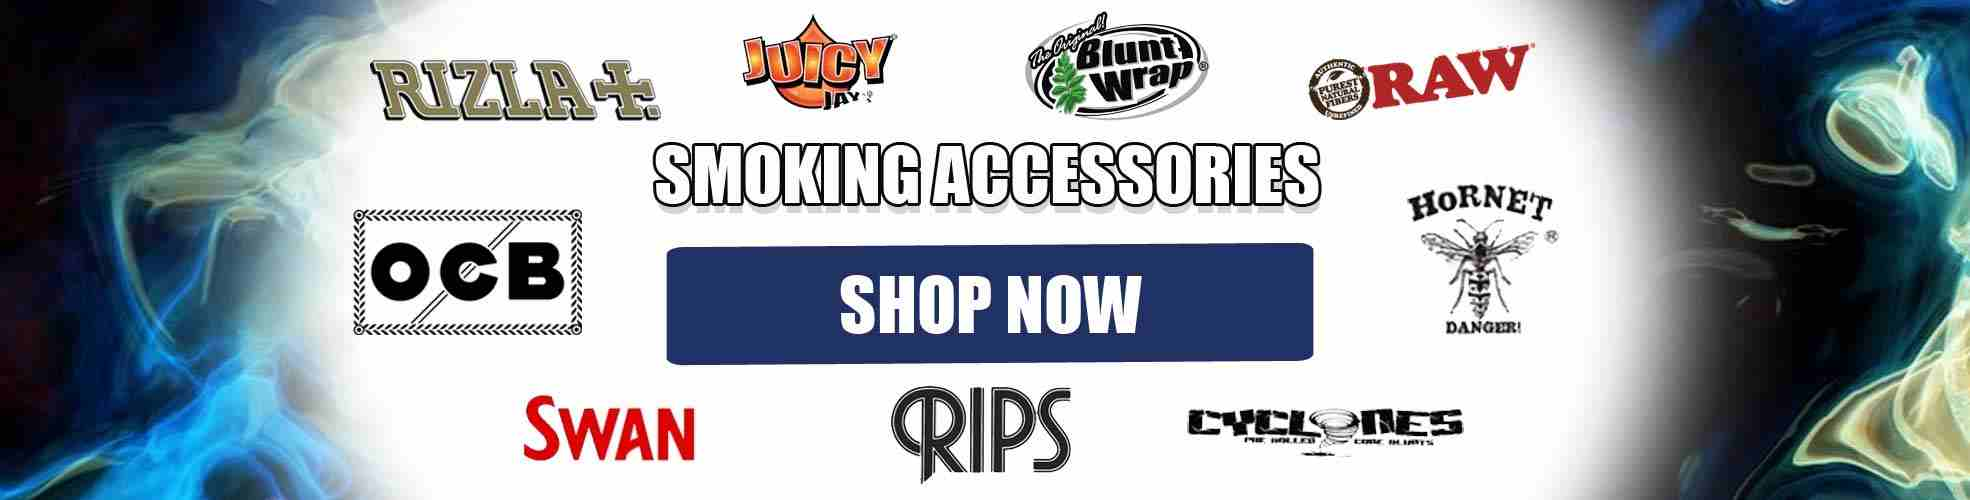 Highland Papers, RAW, Juicy Jay's, ZIG-ZAG, Swan, Blunt Wrap, Hornet, Rips, Bull Brand, Rizzla+, Elements, OCB, Smoking, Rolling Smoking Papers, Apollo Wholesale.